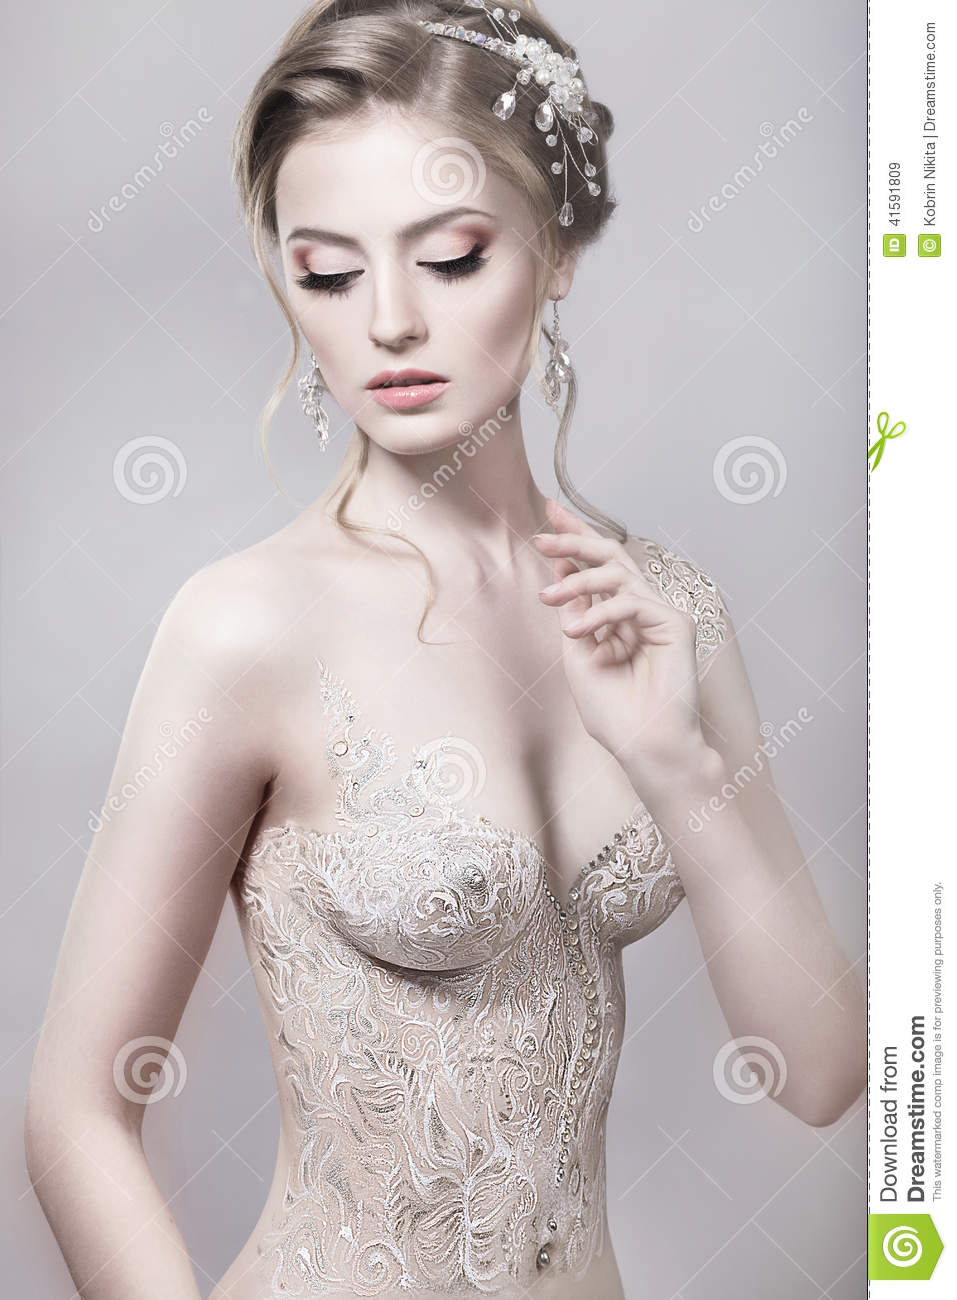 Beautiful Naked Girl In The Image Of A Bride With Stock -4342